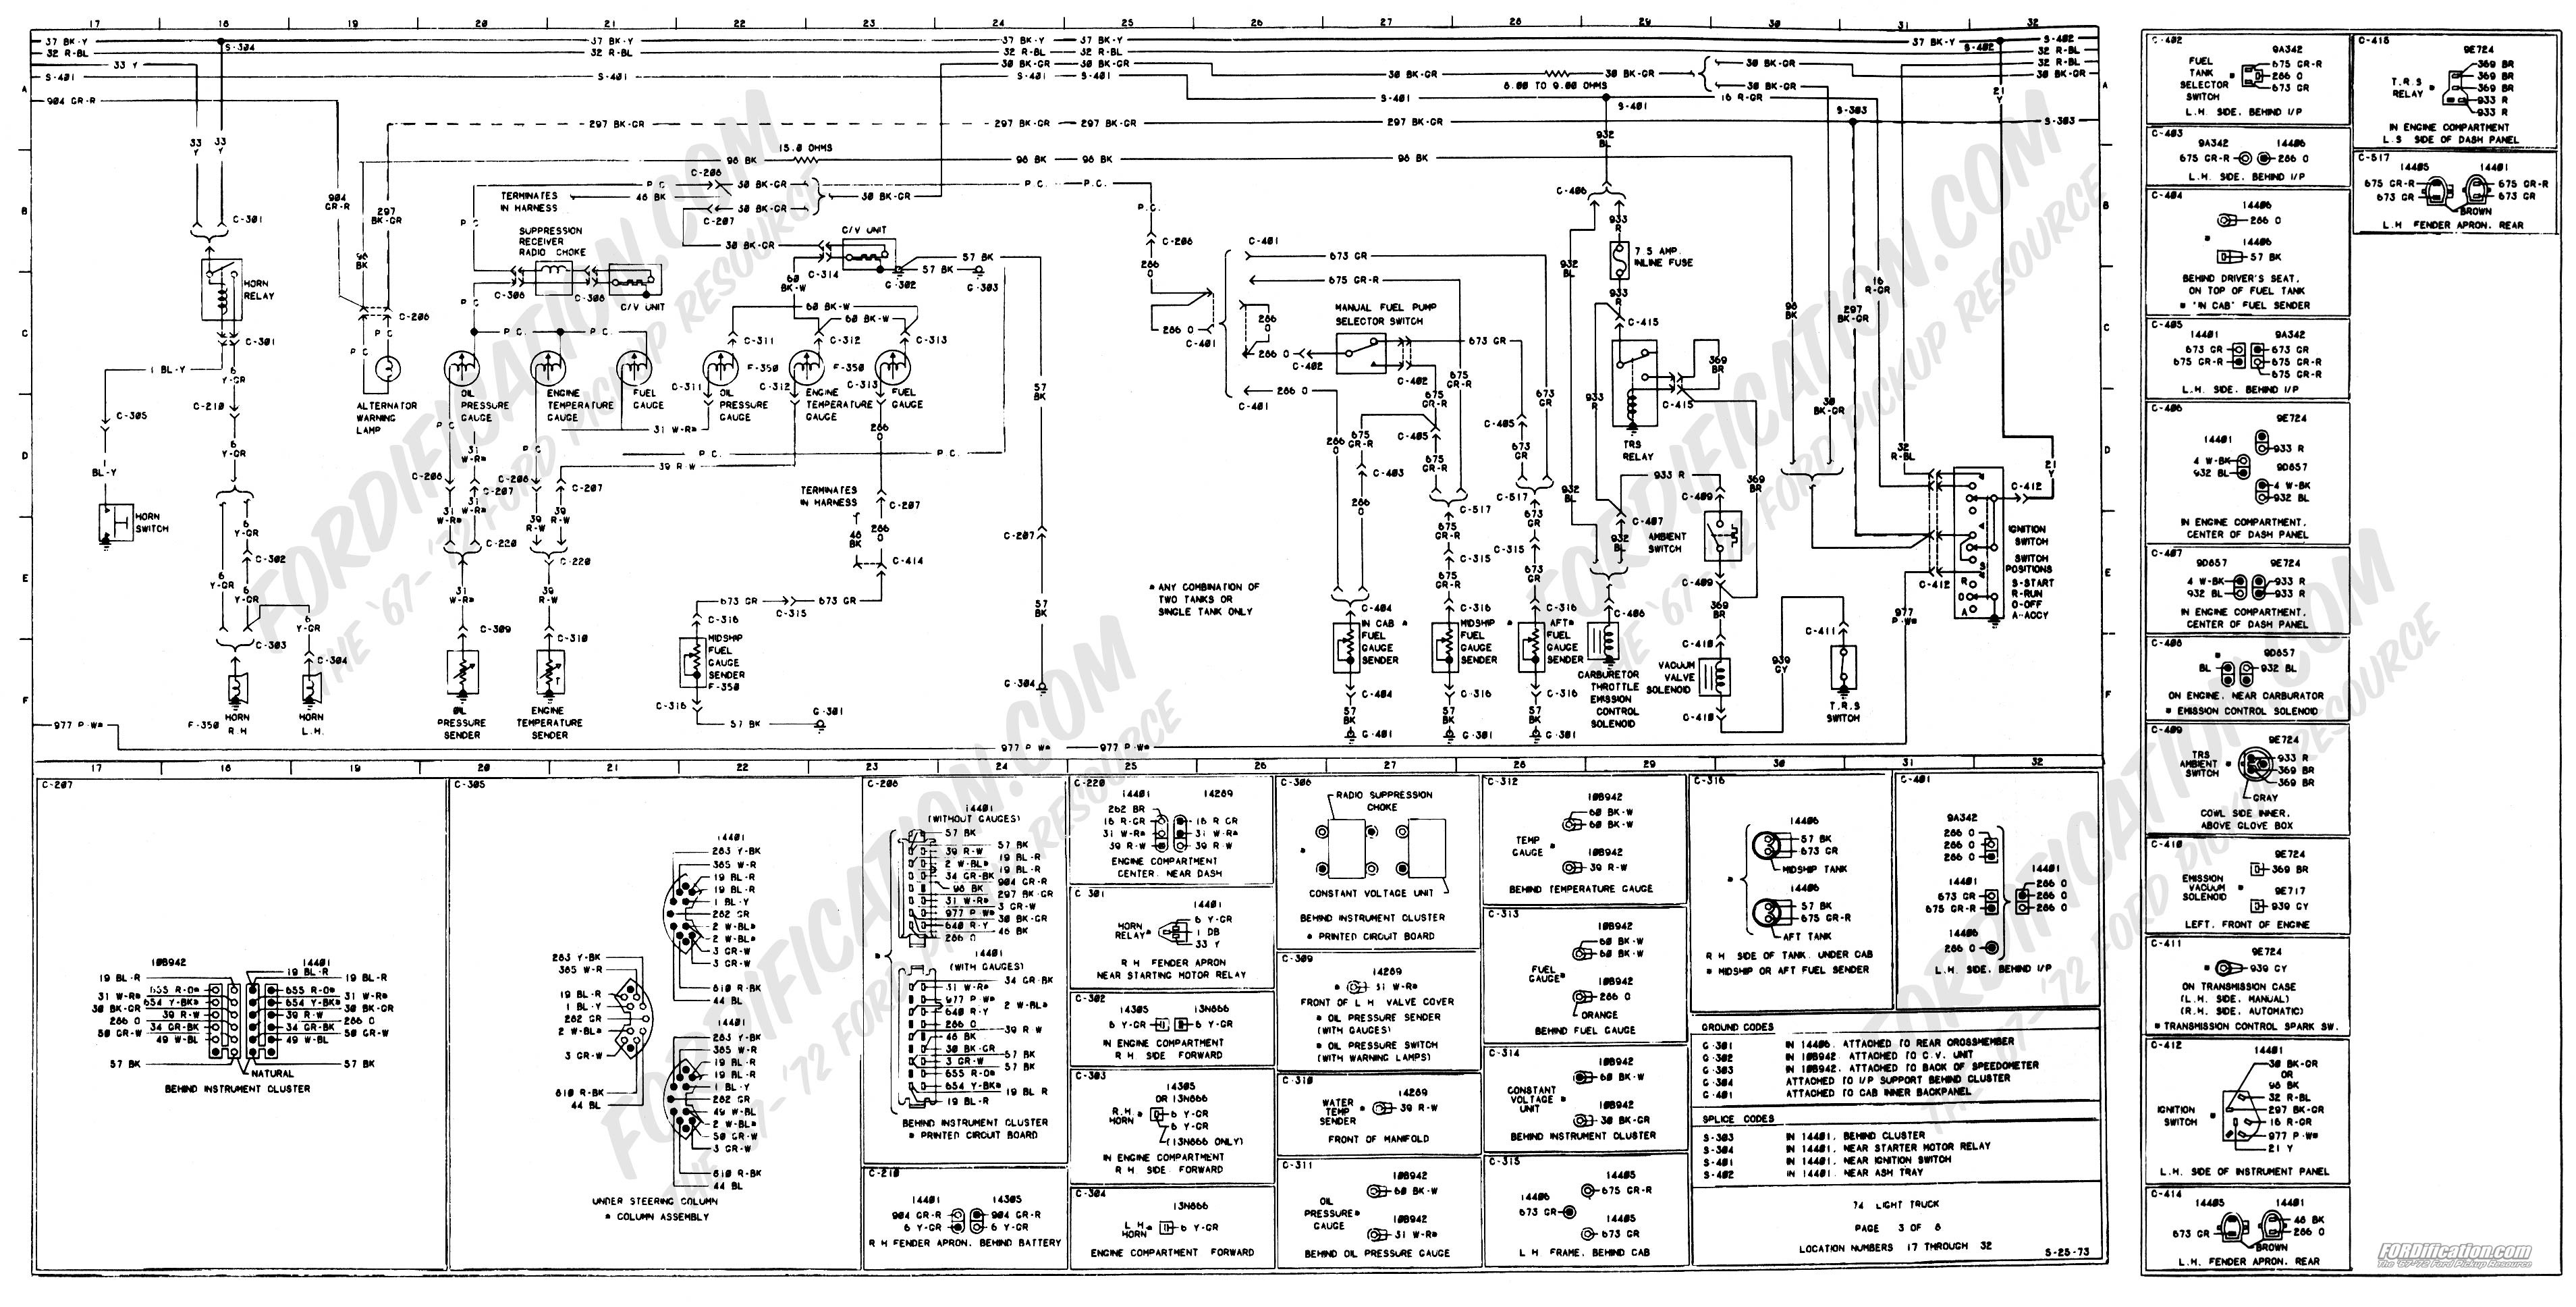 Ford 6 0 Engine Diagram ford F350 Wiring Diagram 6 Lenito Of Ford 6 0 Engine Diagram